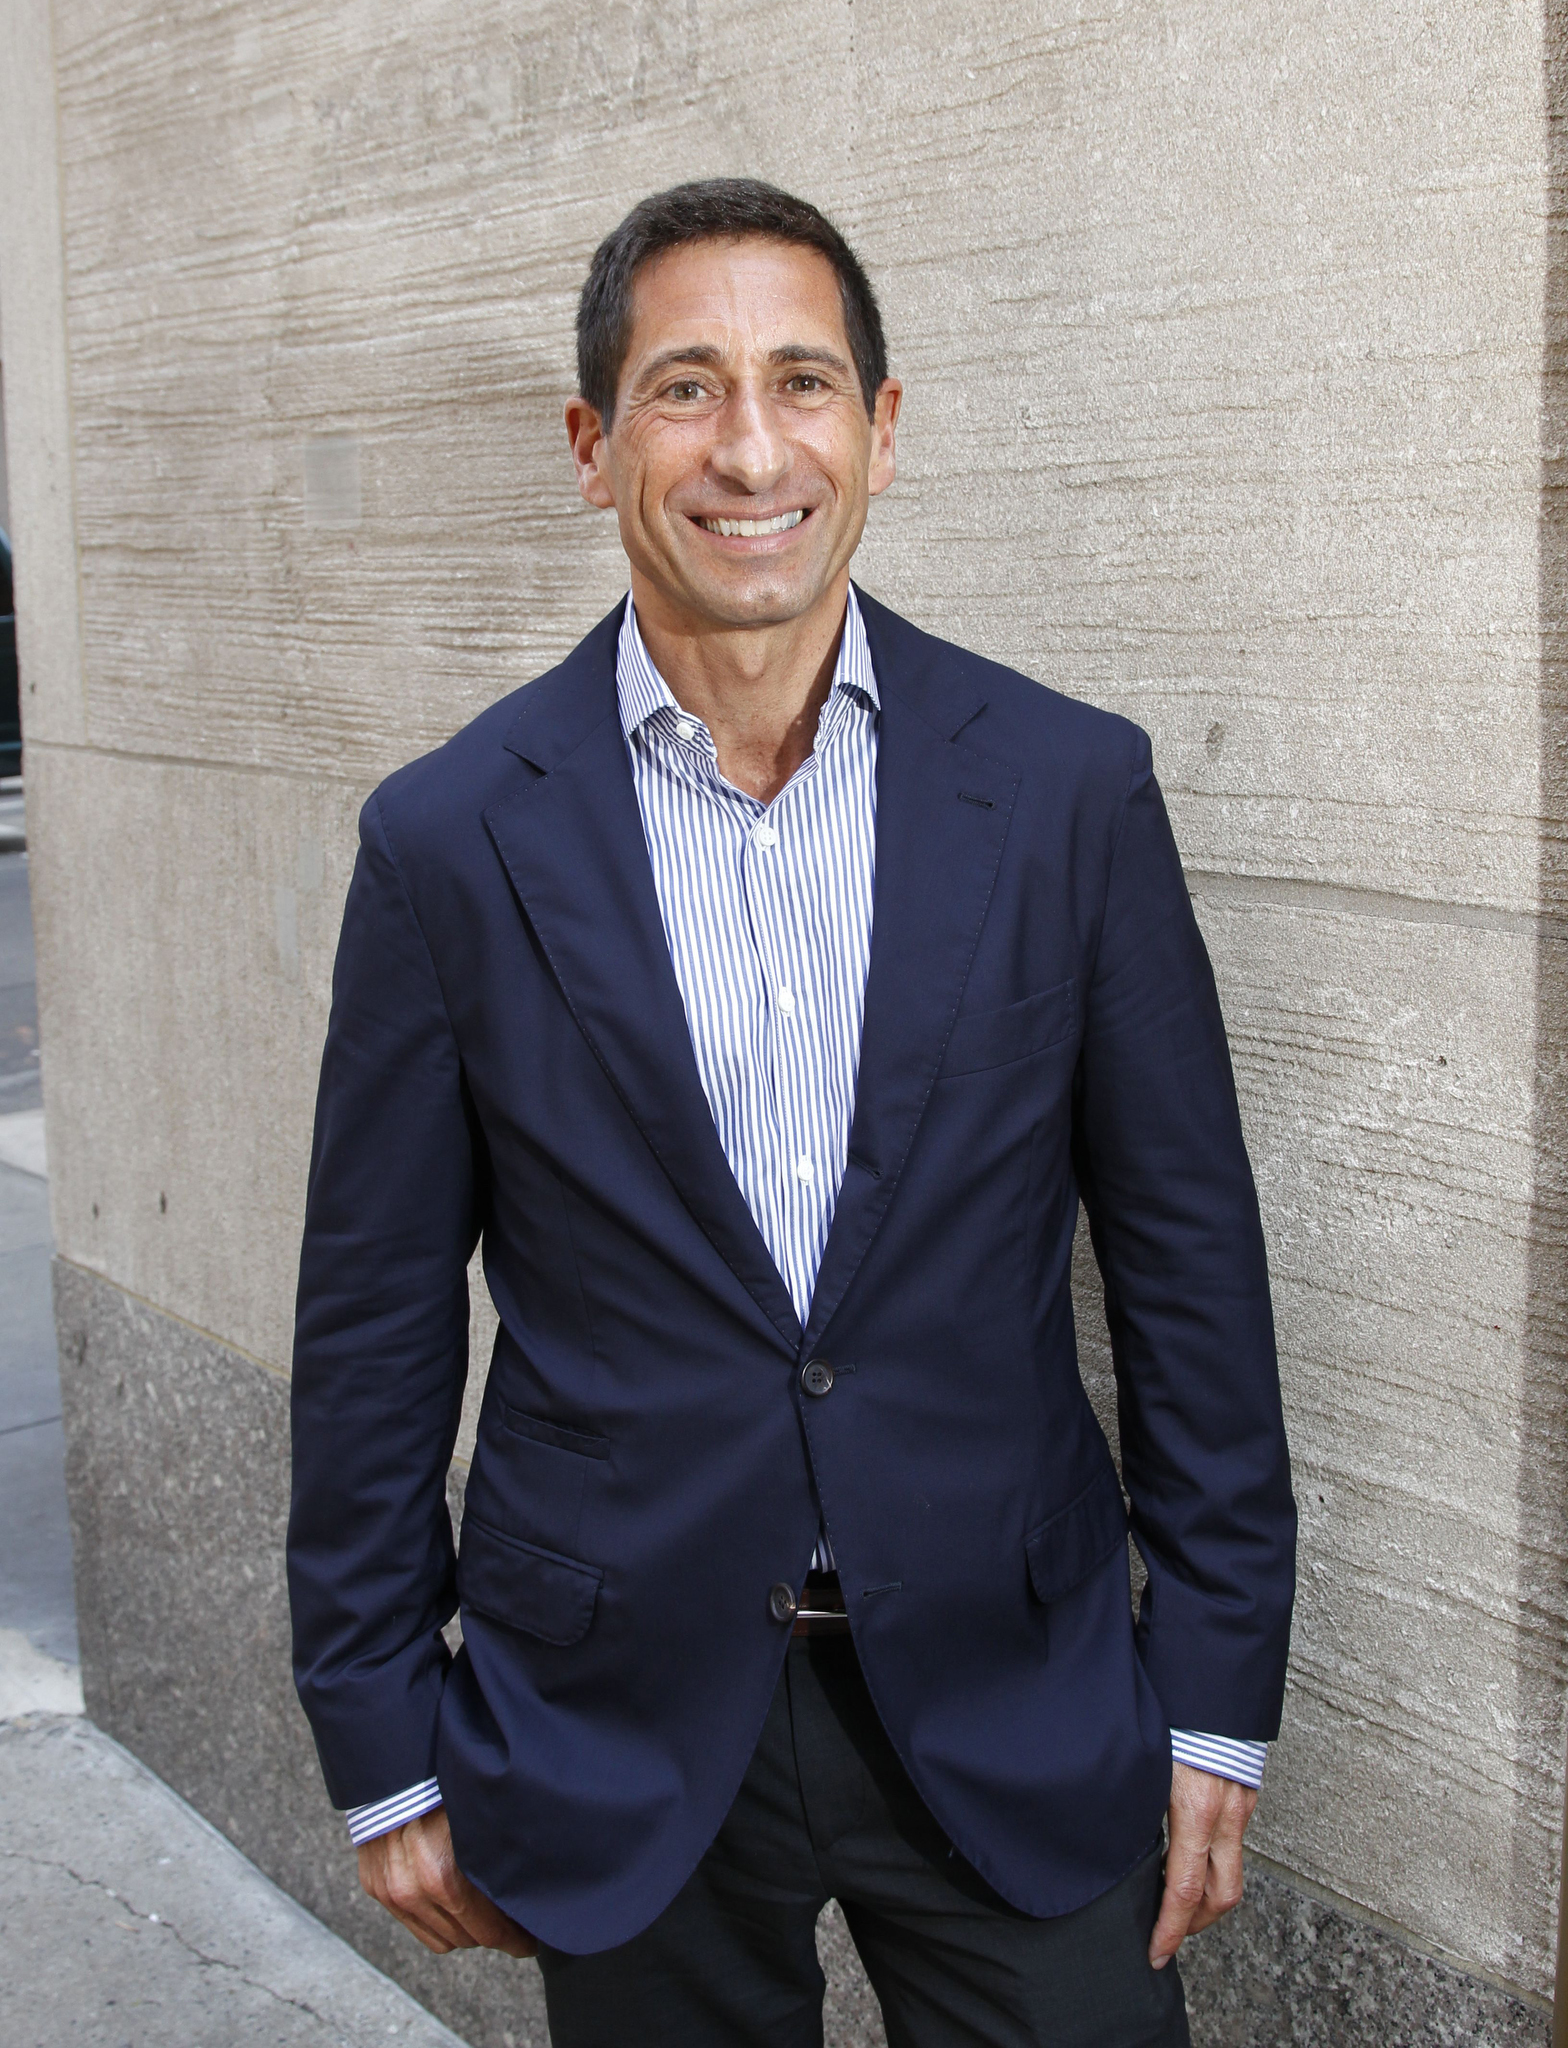 Gary Muto, president and CEO of Ascena Brands